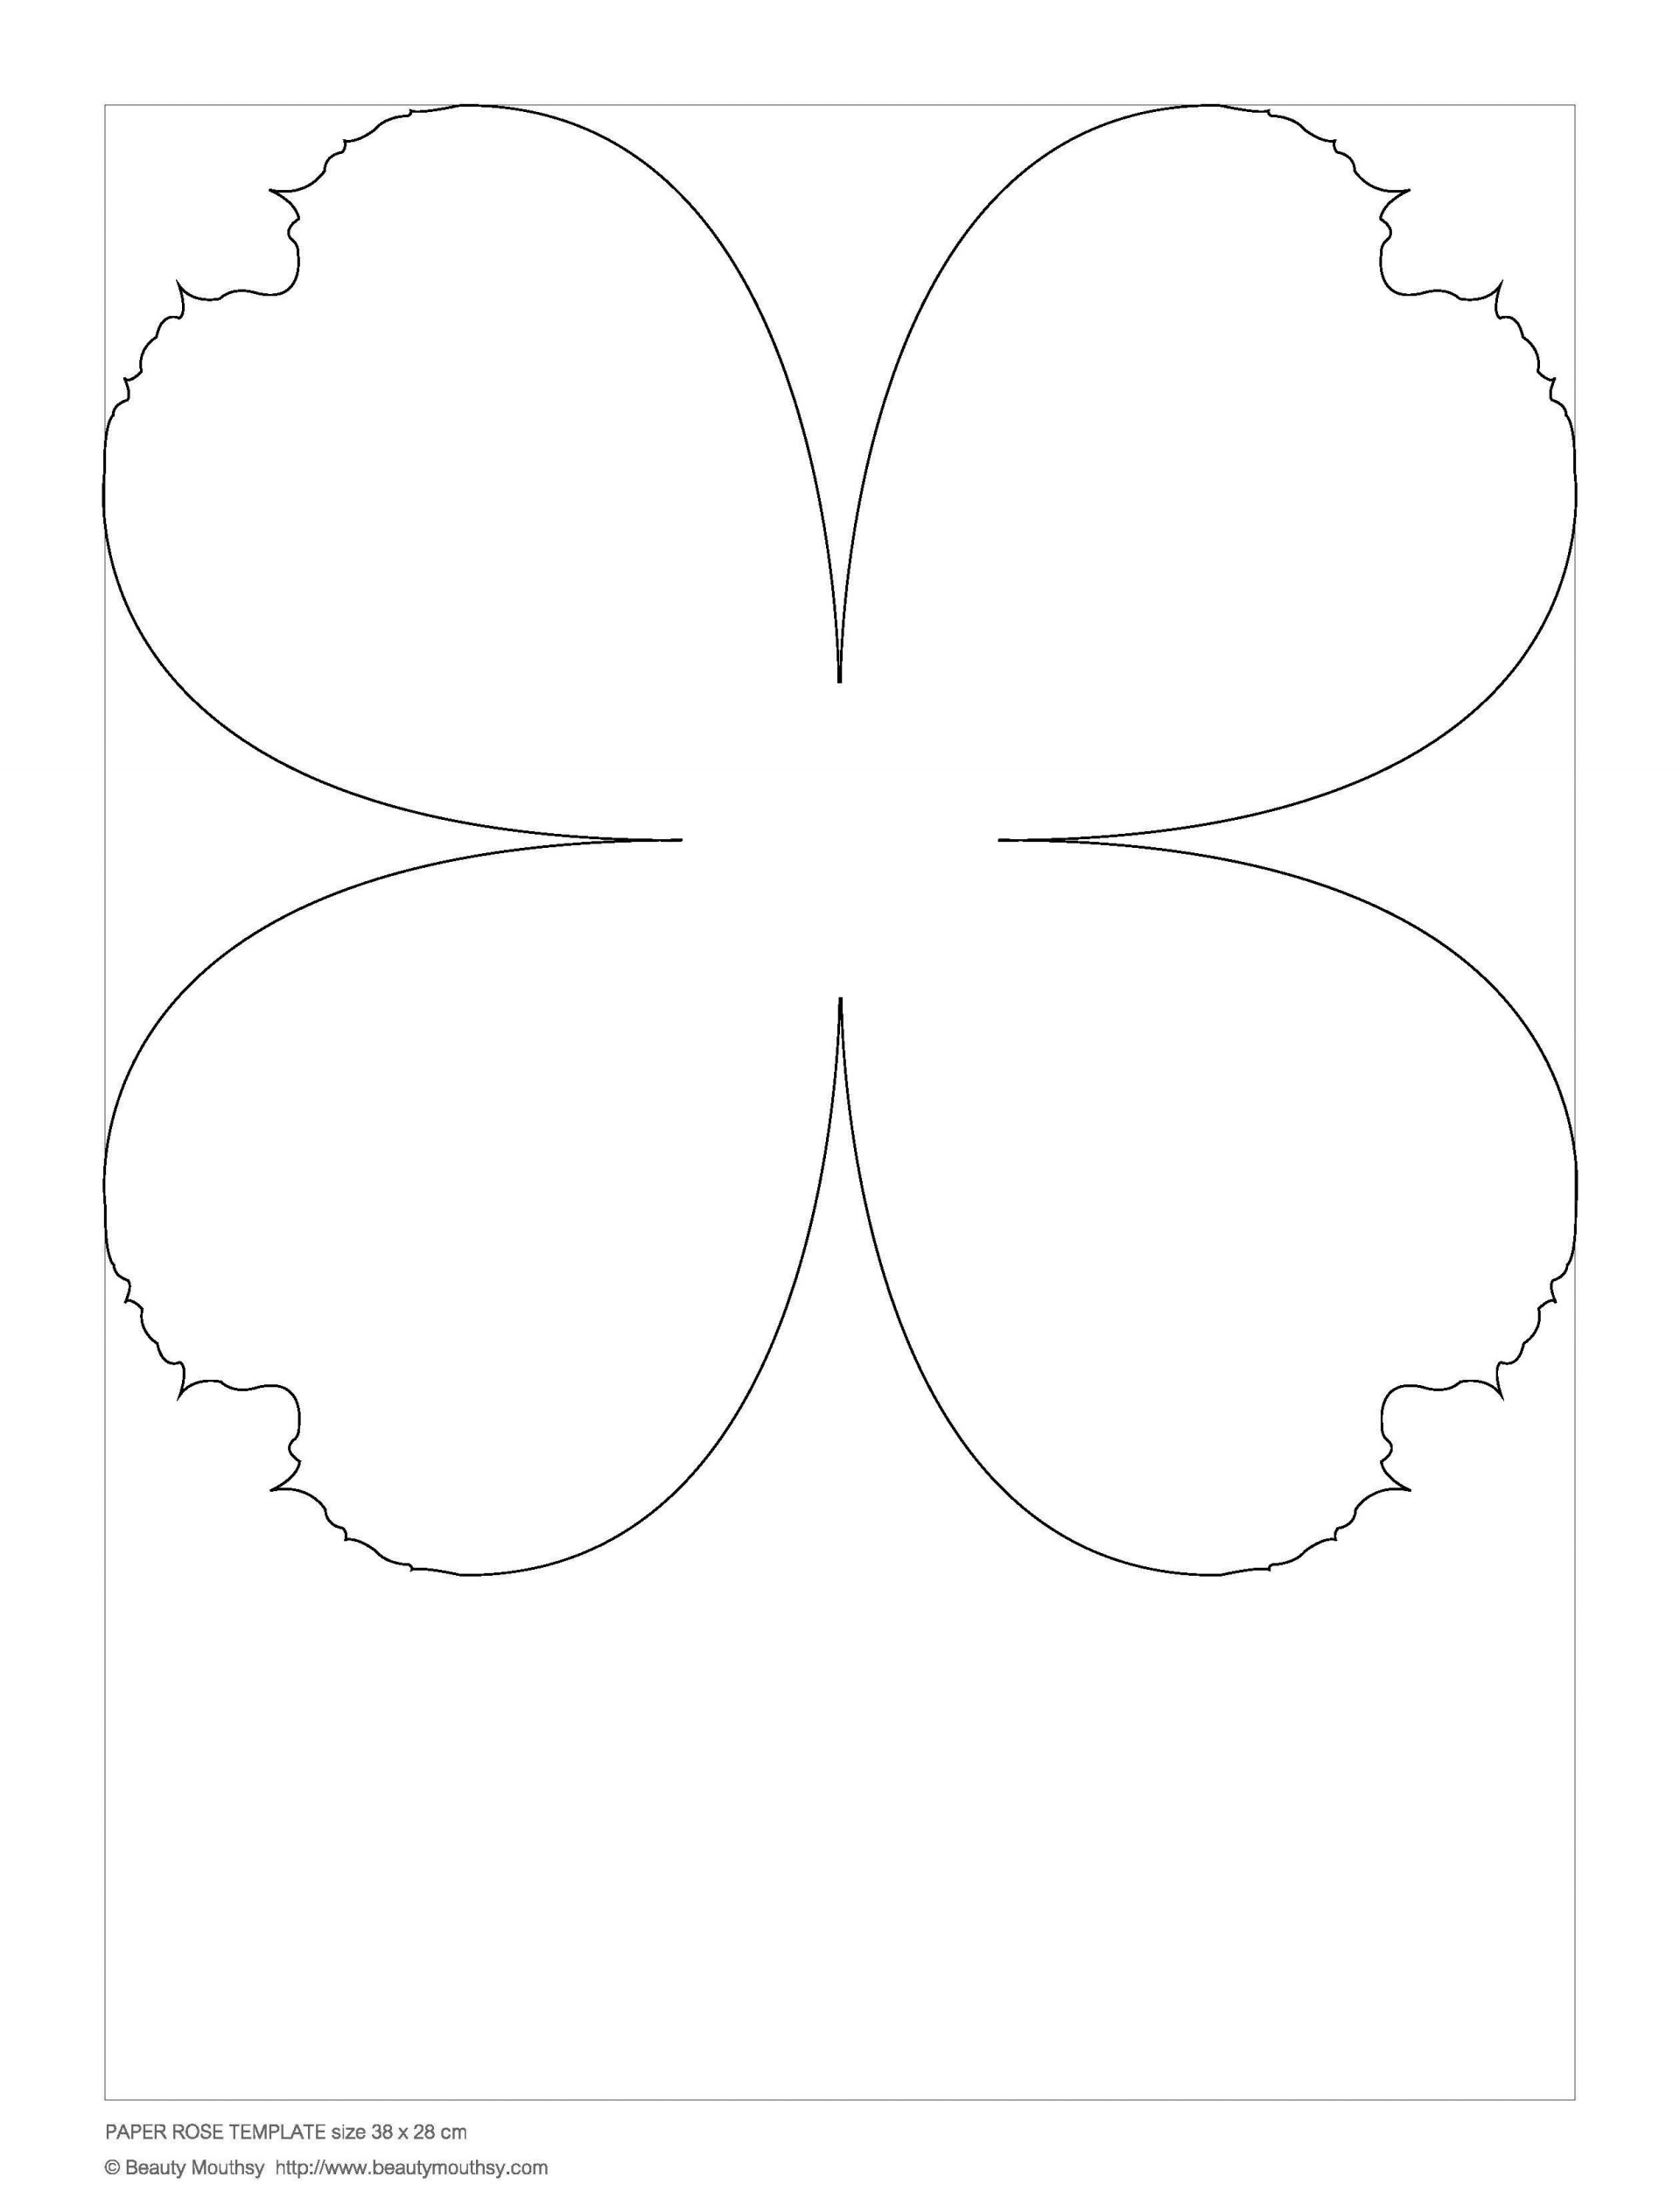 002 Simple Free Small Paper Flower Petal Template Highest Clarity  Templates1920